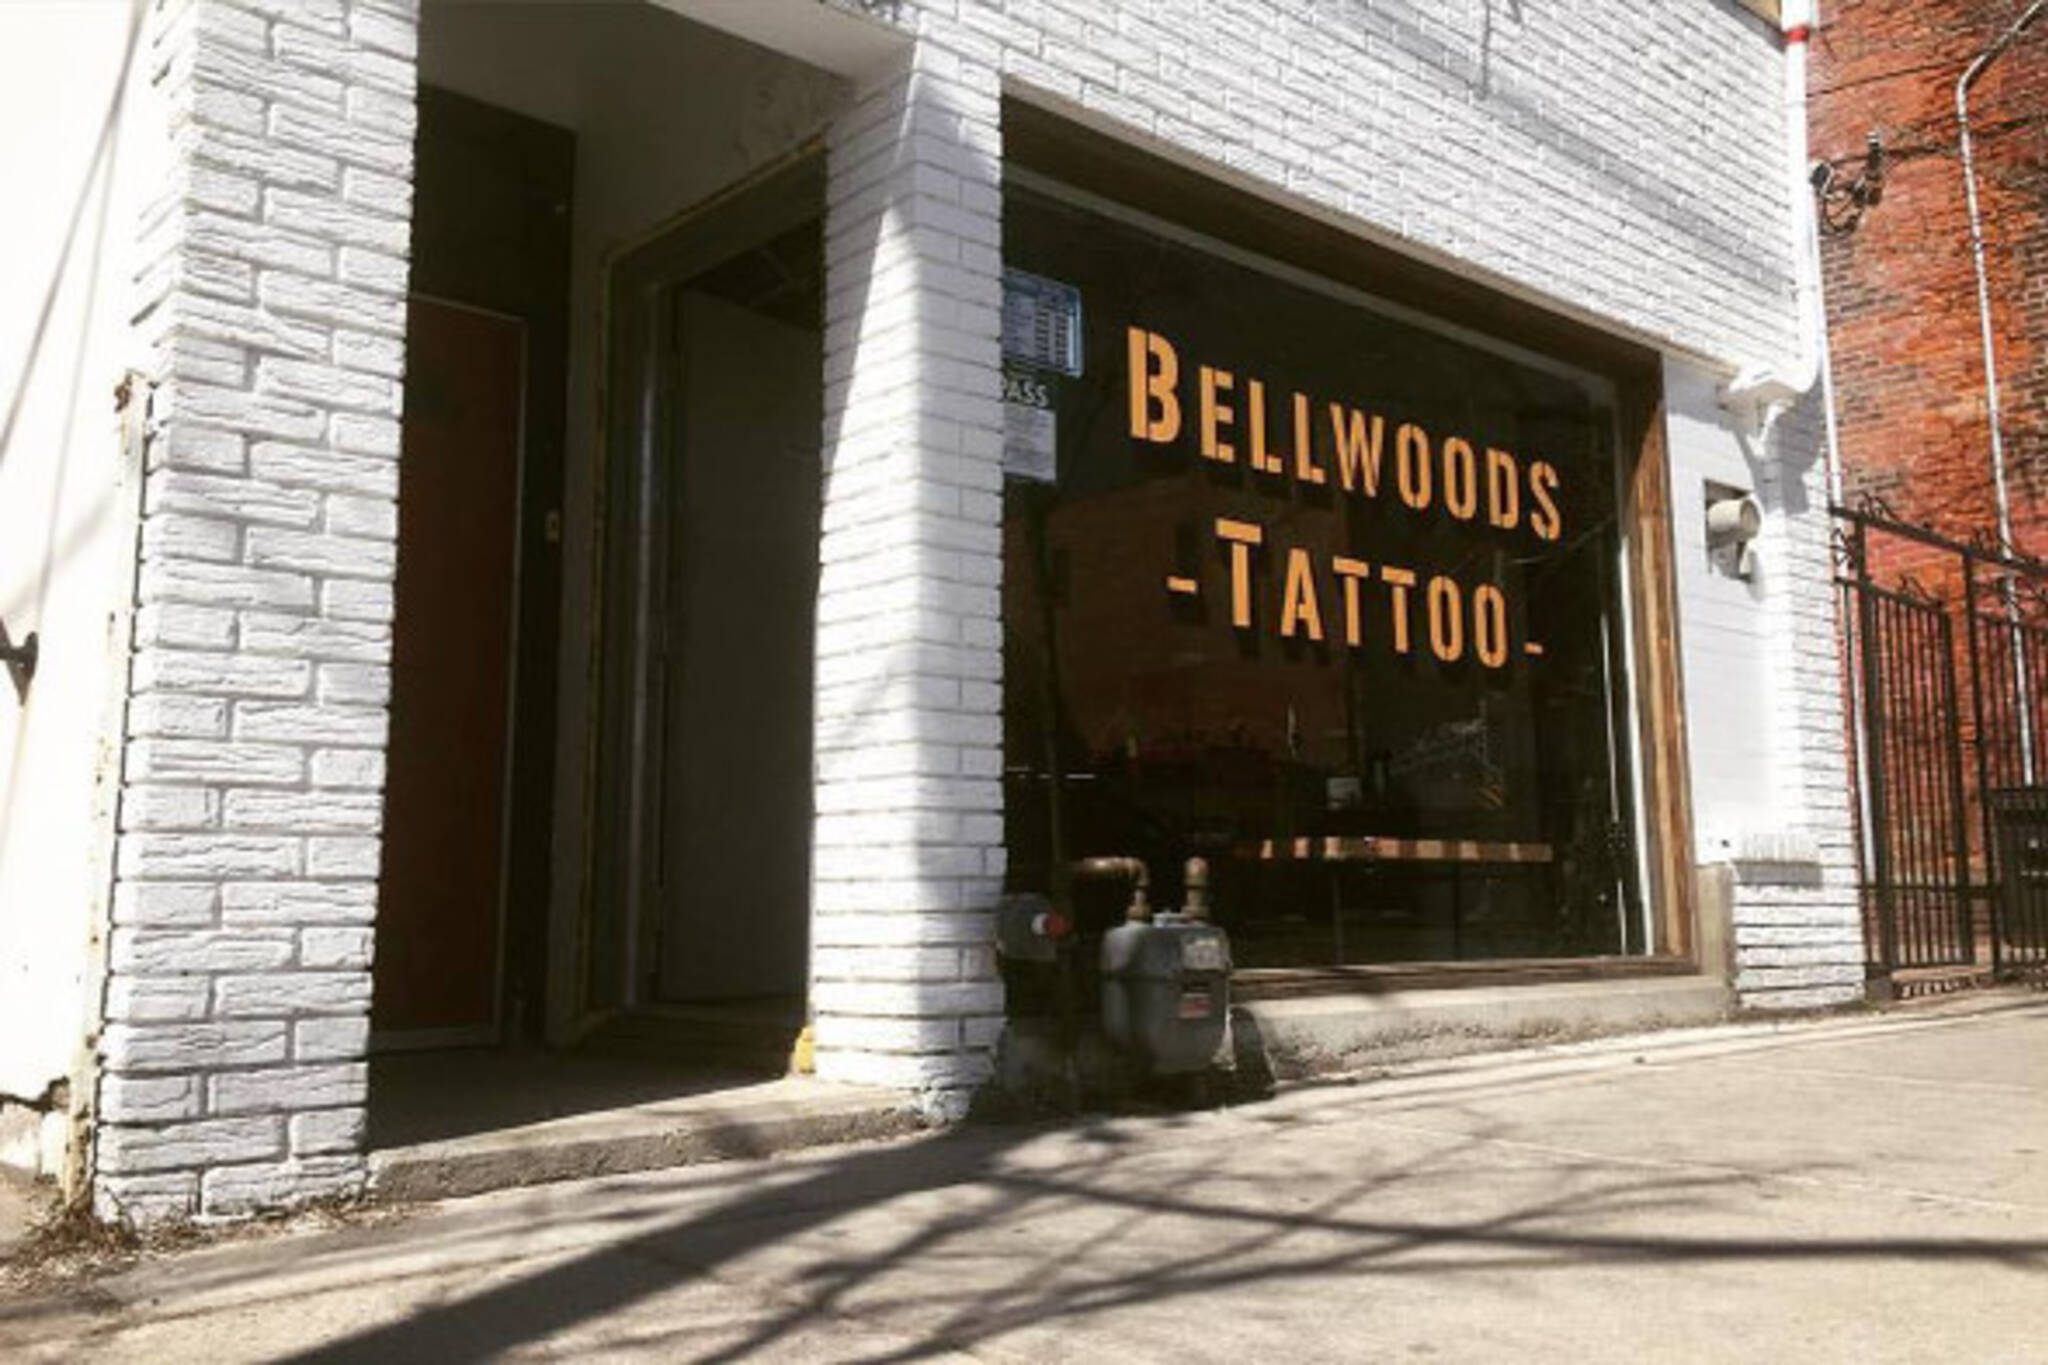 Bellwoods Tattoo